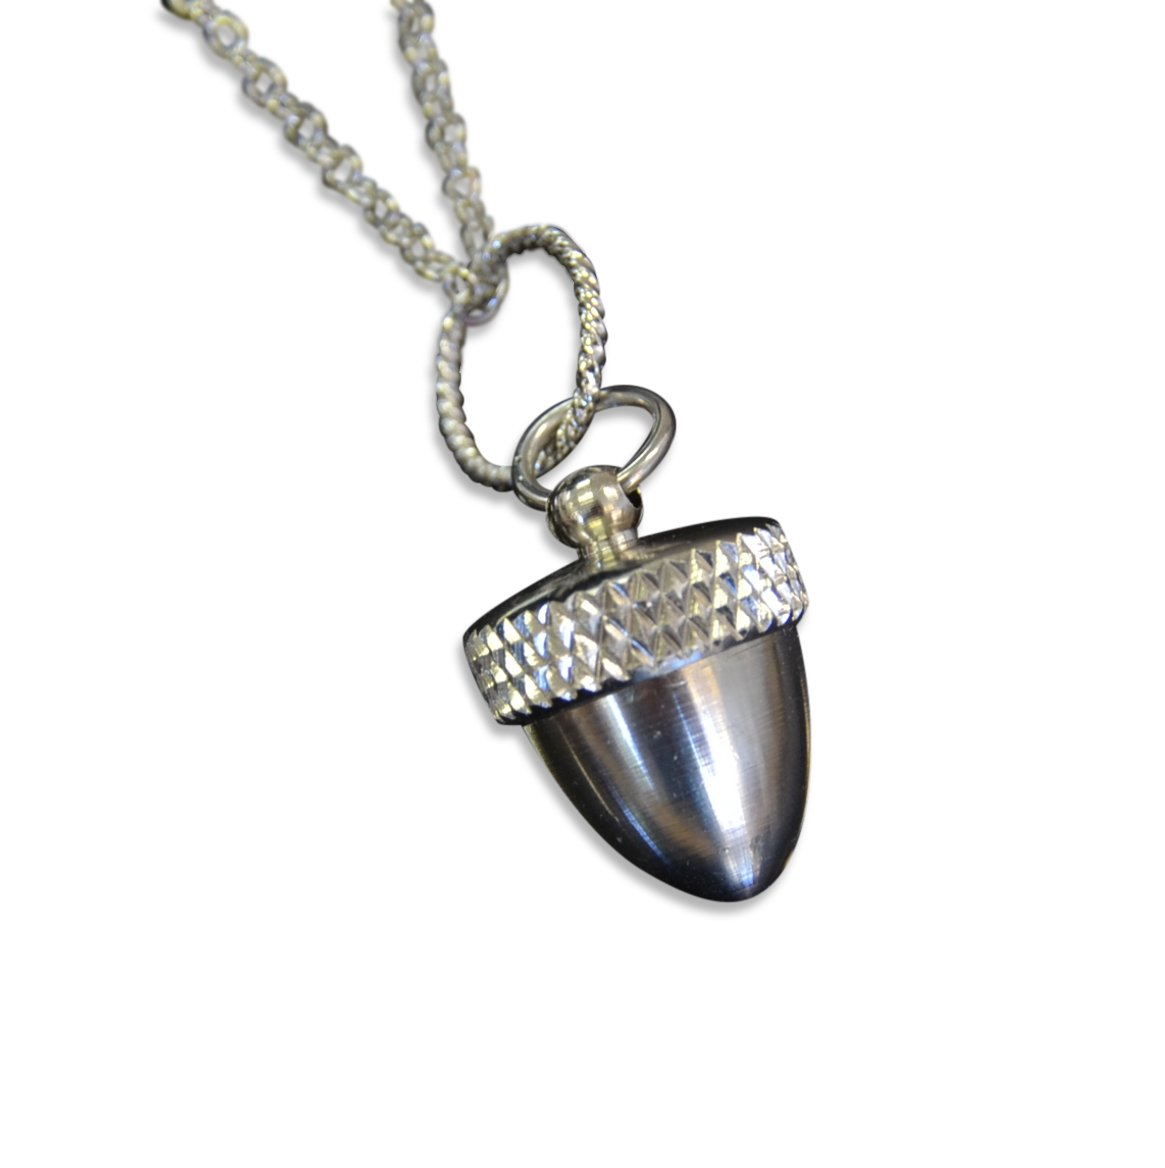 Stainless Steel Acorn Capsule Pendant Necklace - Screw Top Cremation Ashes Jewelry (18 Inches)